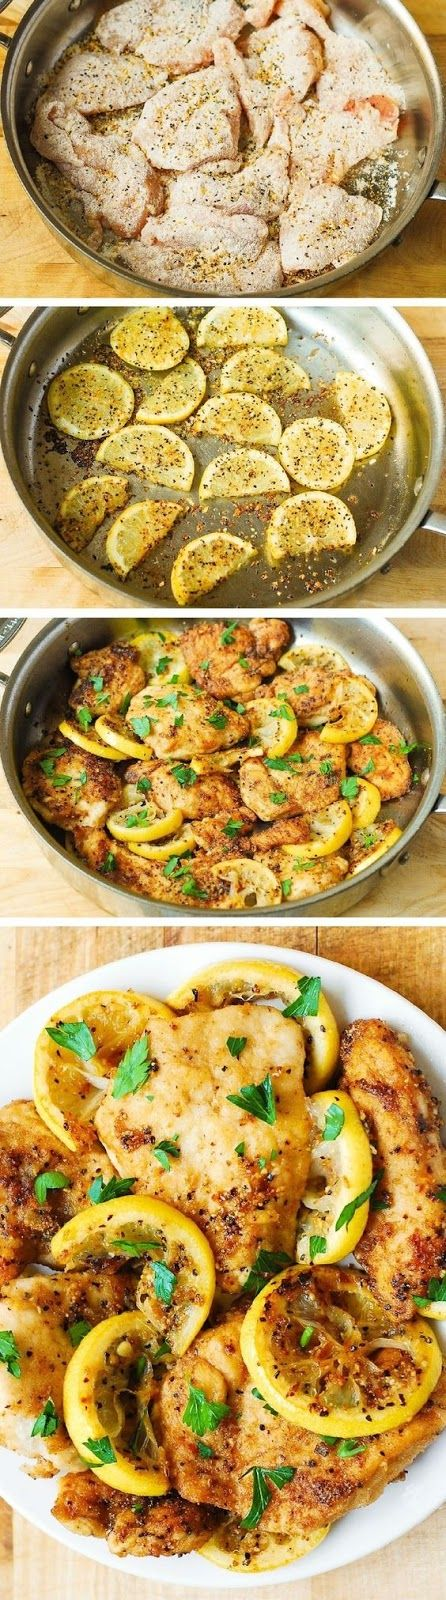 Lemon Butter Chicken Breasts     Ingredients   6 medium boneless skinless chicken breast halves (1-1/2 pounds)  1/2 cup all-purpose flour...